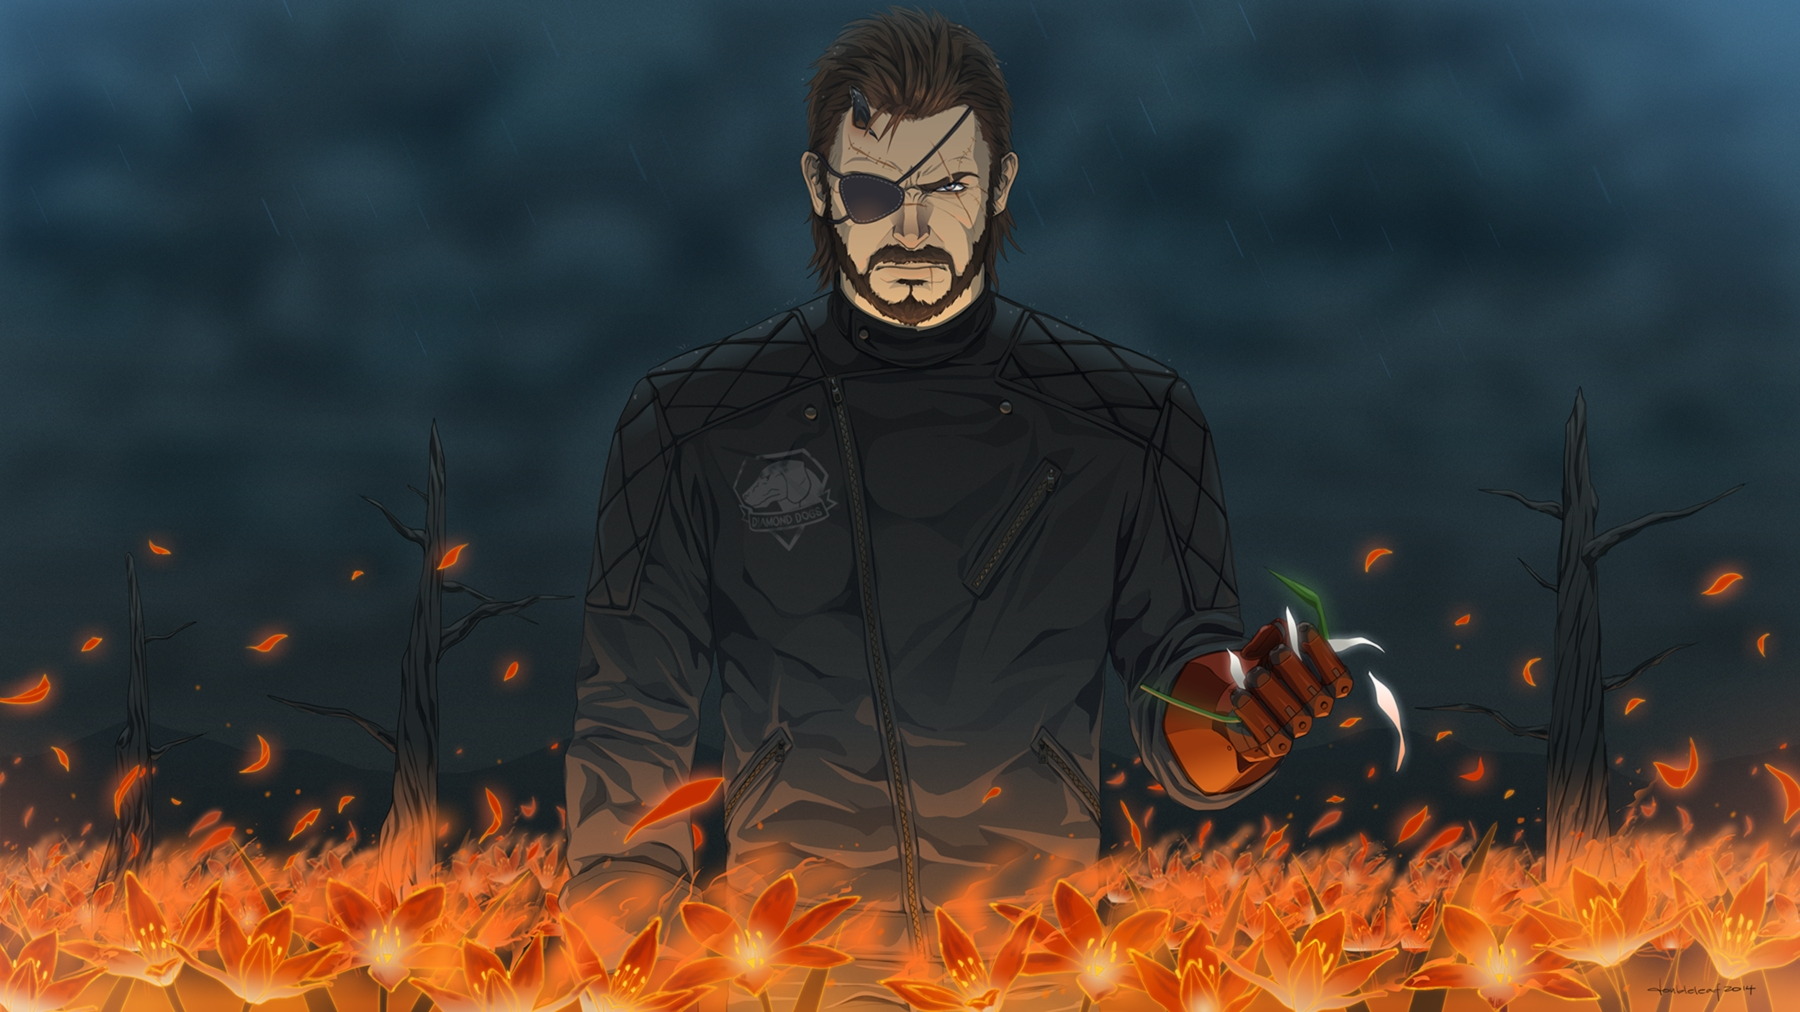 big boss - metal gear solid - zerochan anime image board